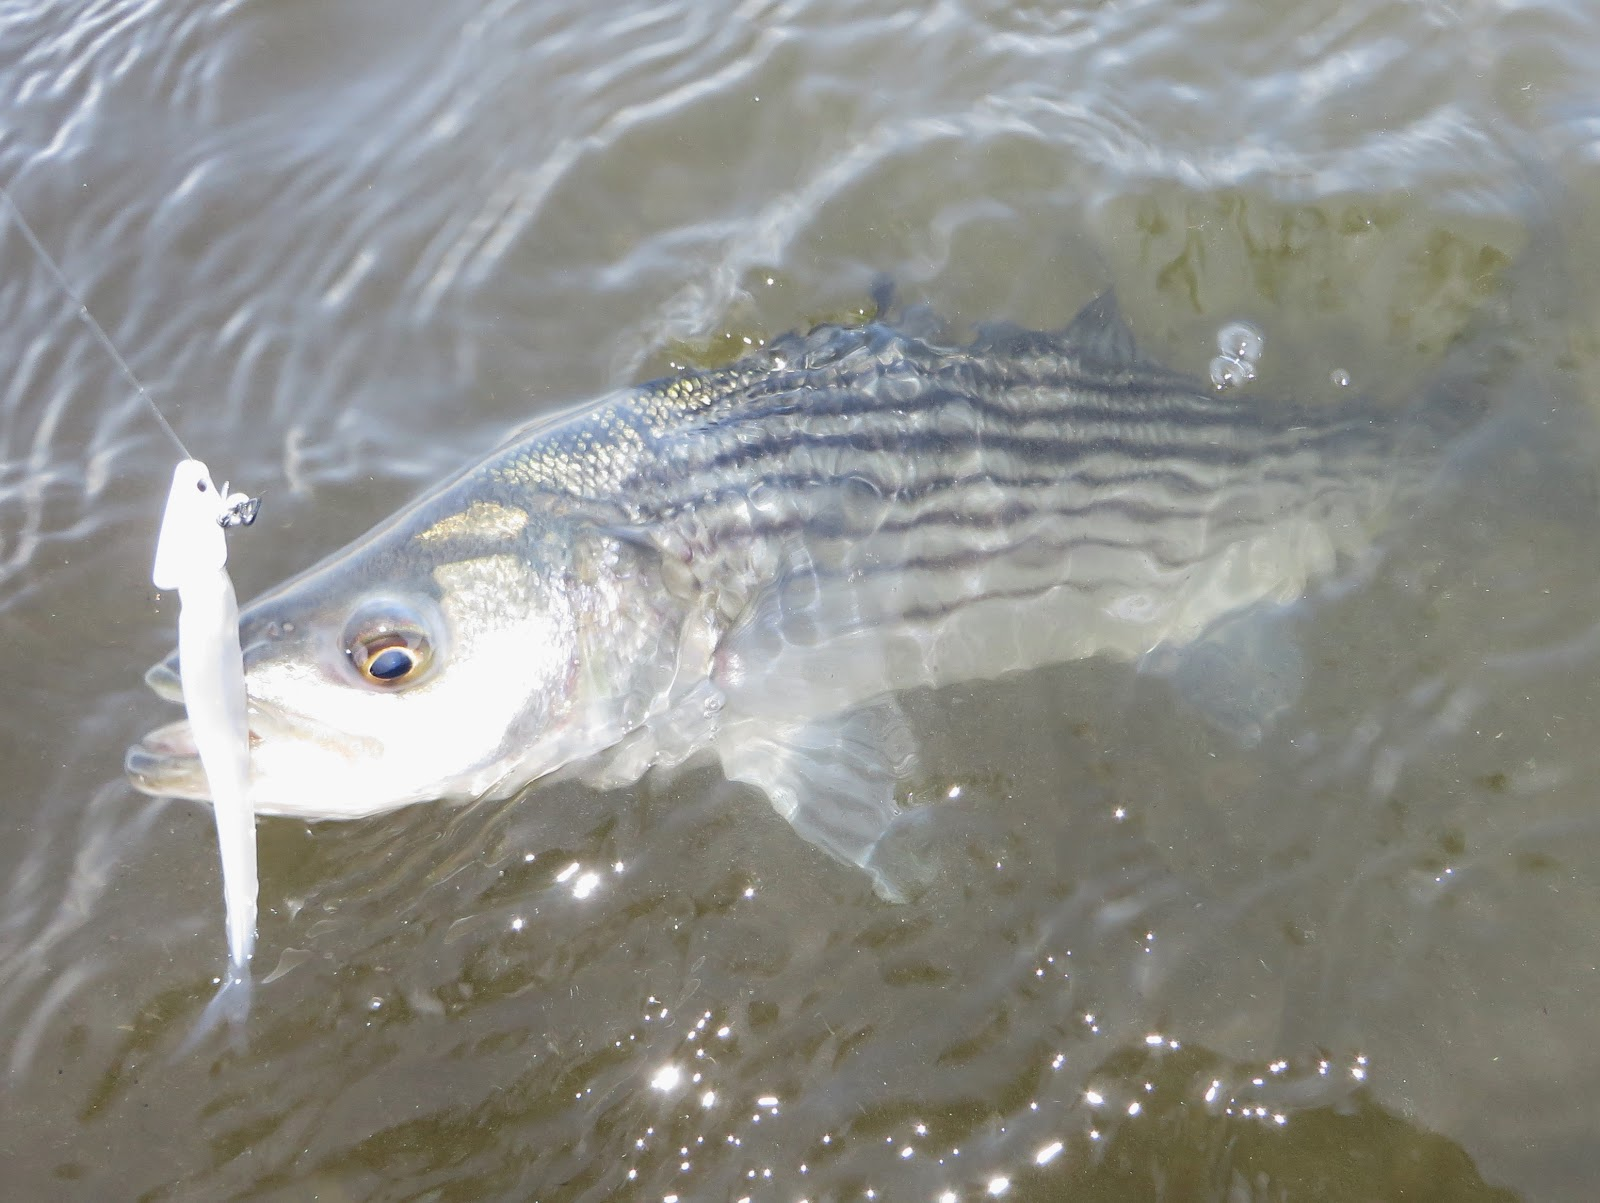 Rhode island striped bass first striper of the year for me geenschuldenfo Image collections